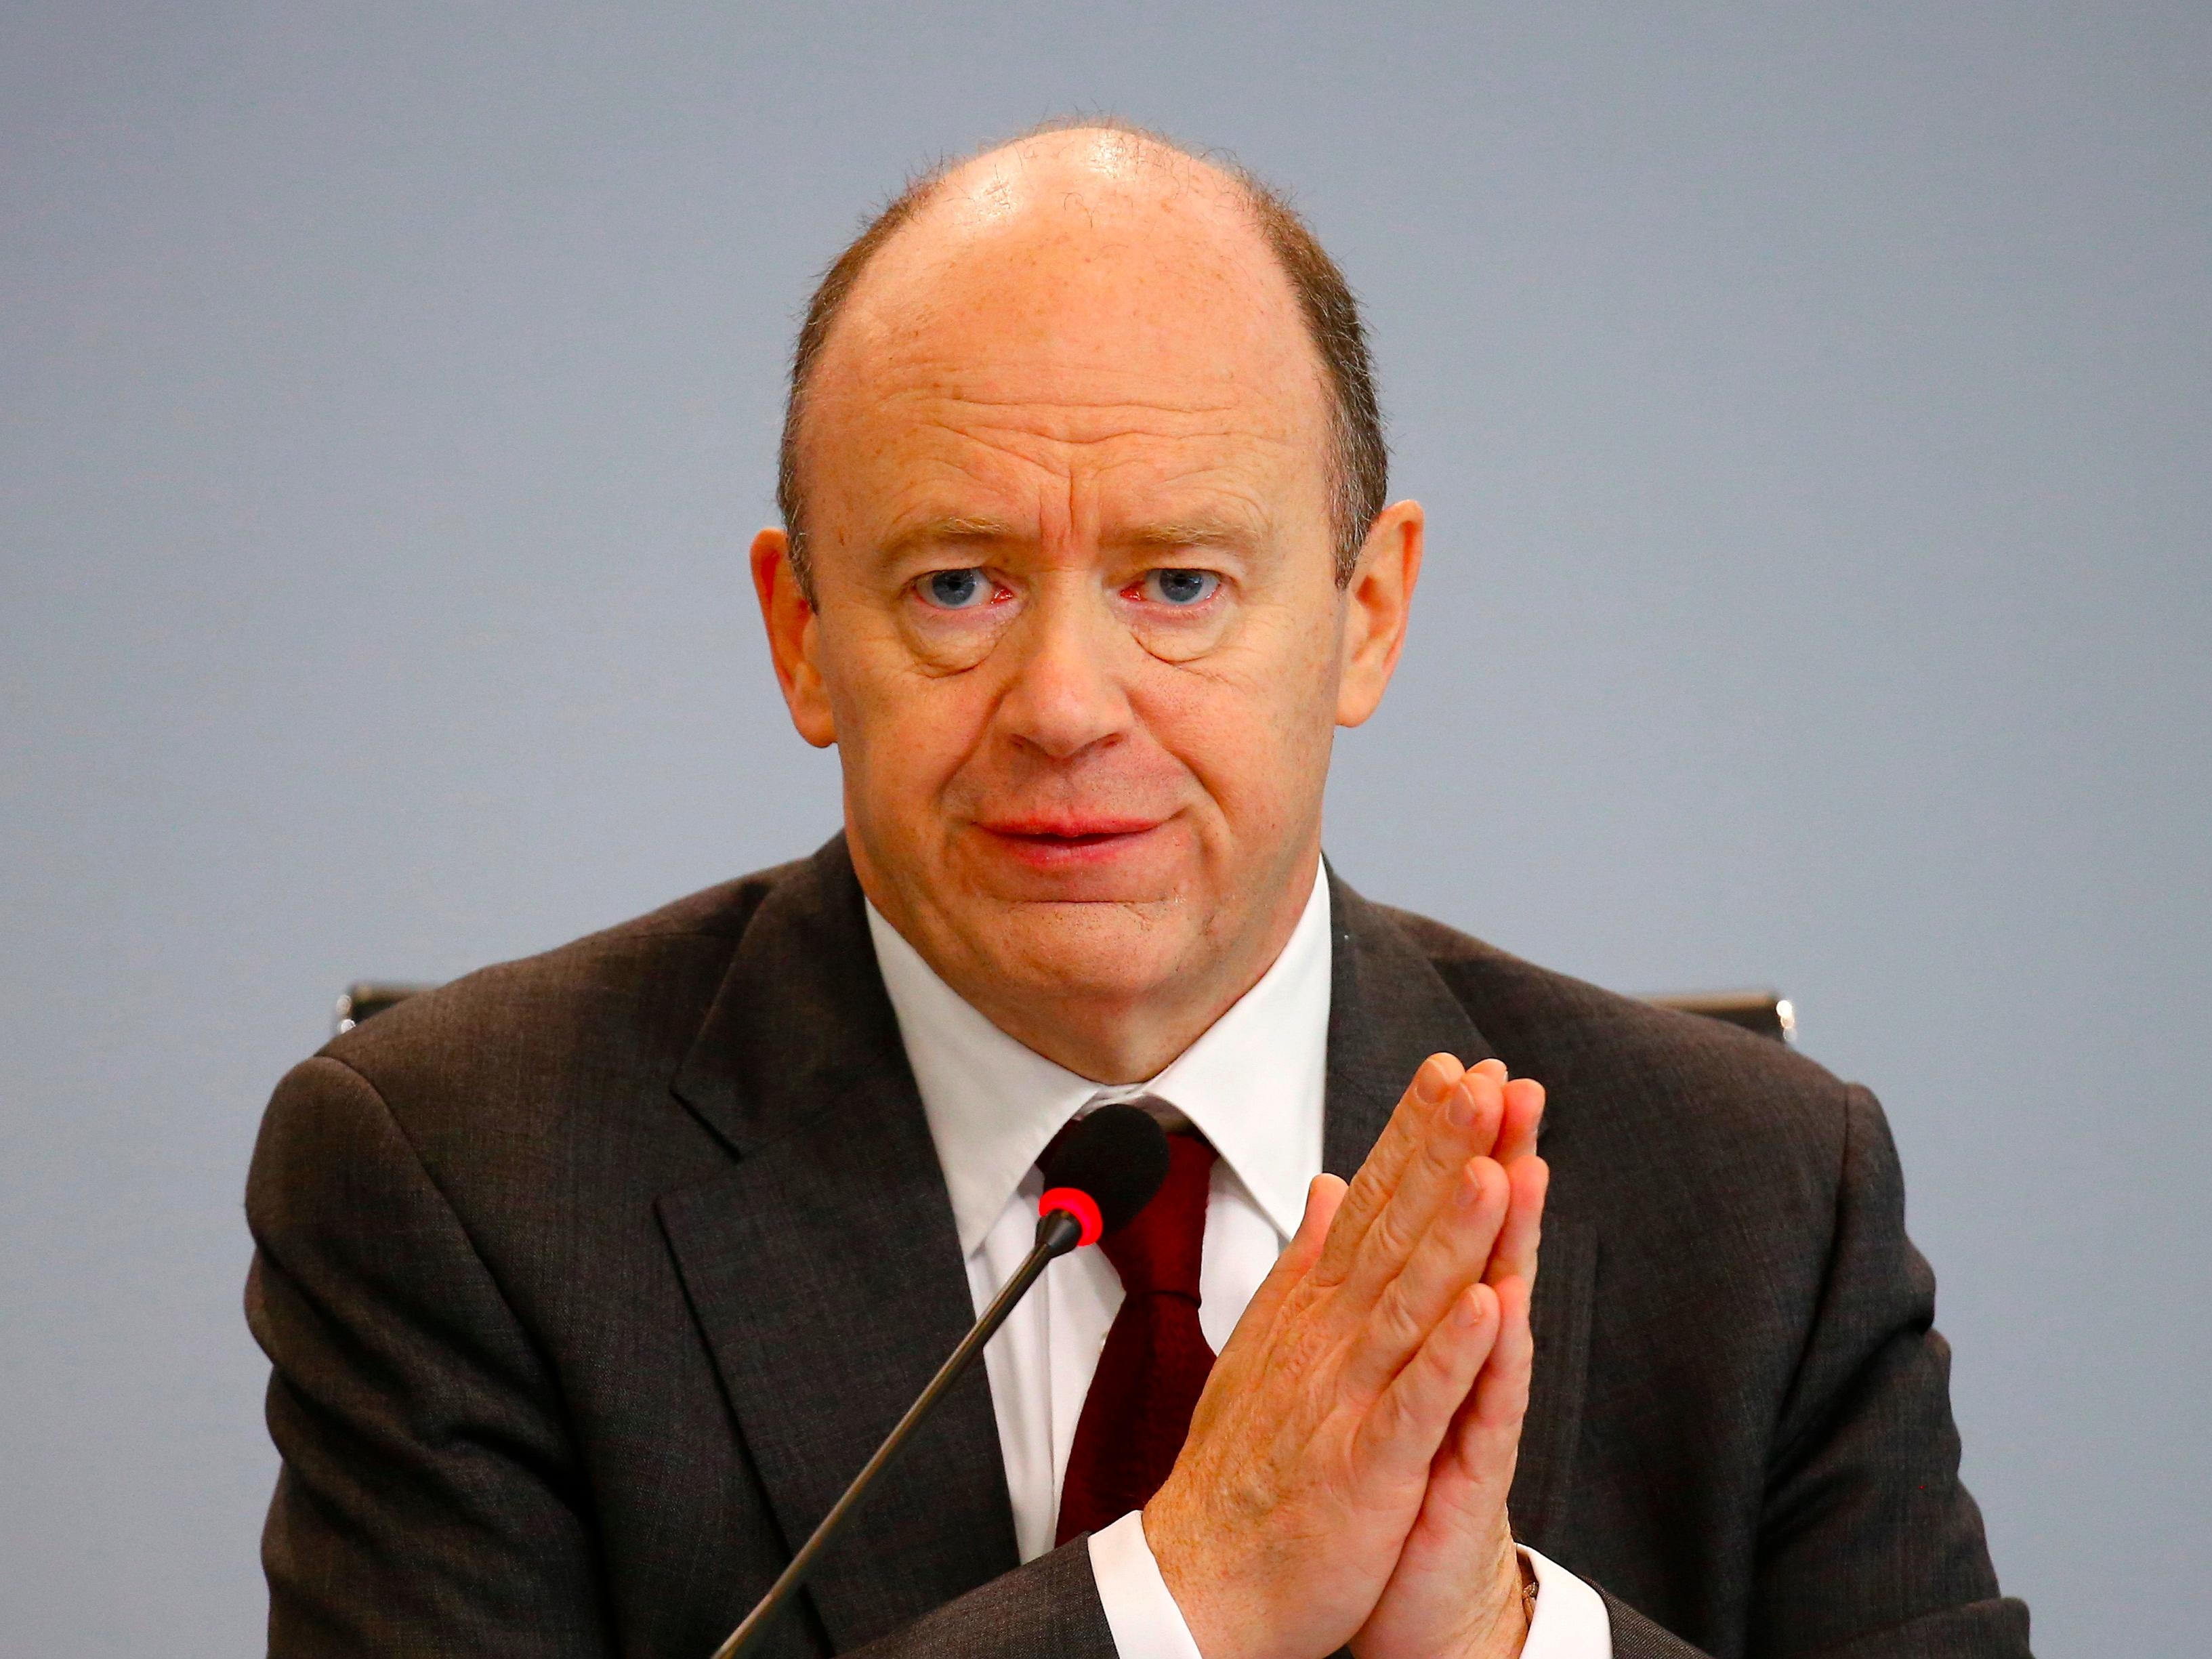 Deutsche Bank's CEO says the bank is 'absolutely rock-solid' in memo to employees